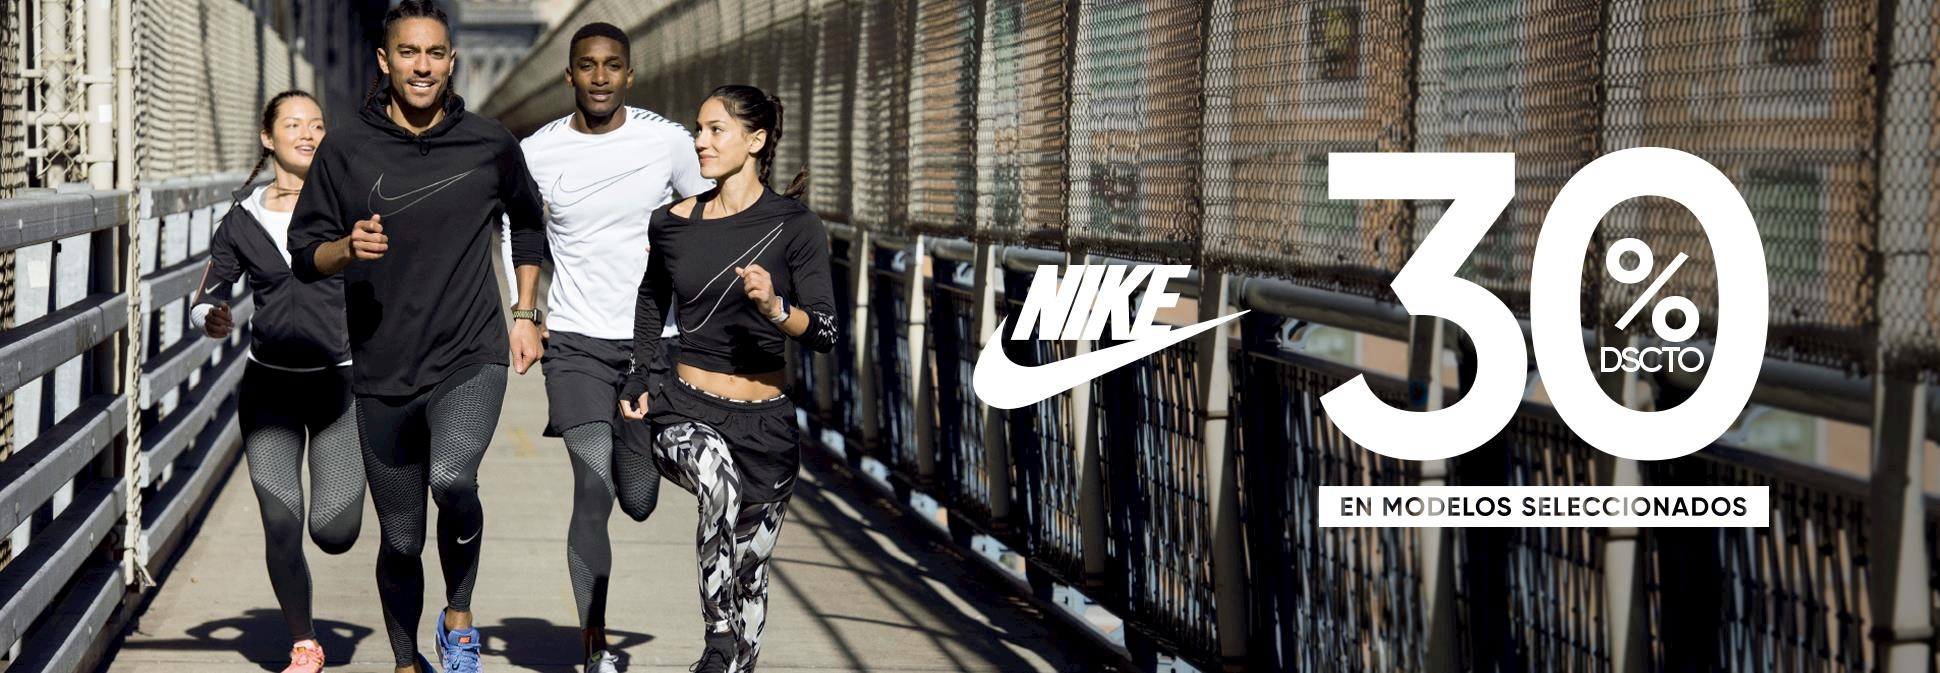 banner-nike.png